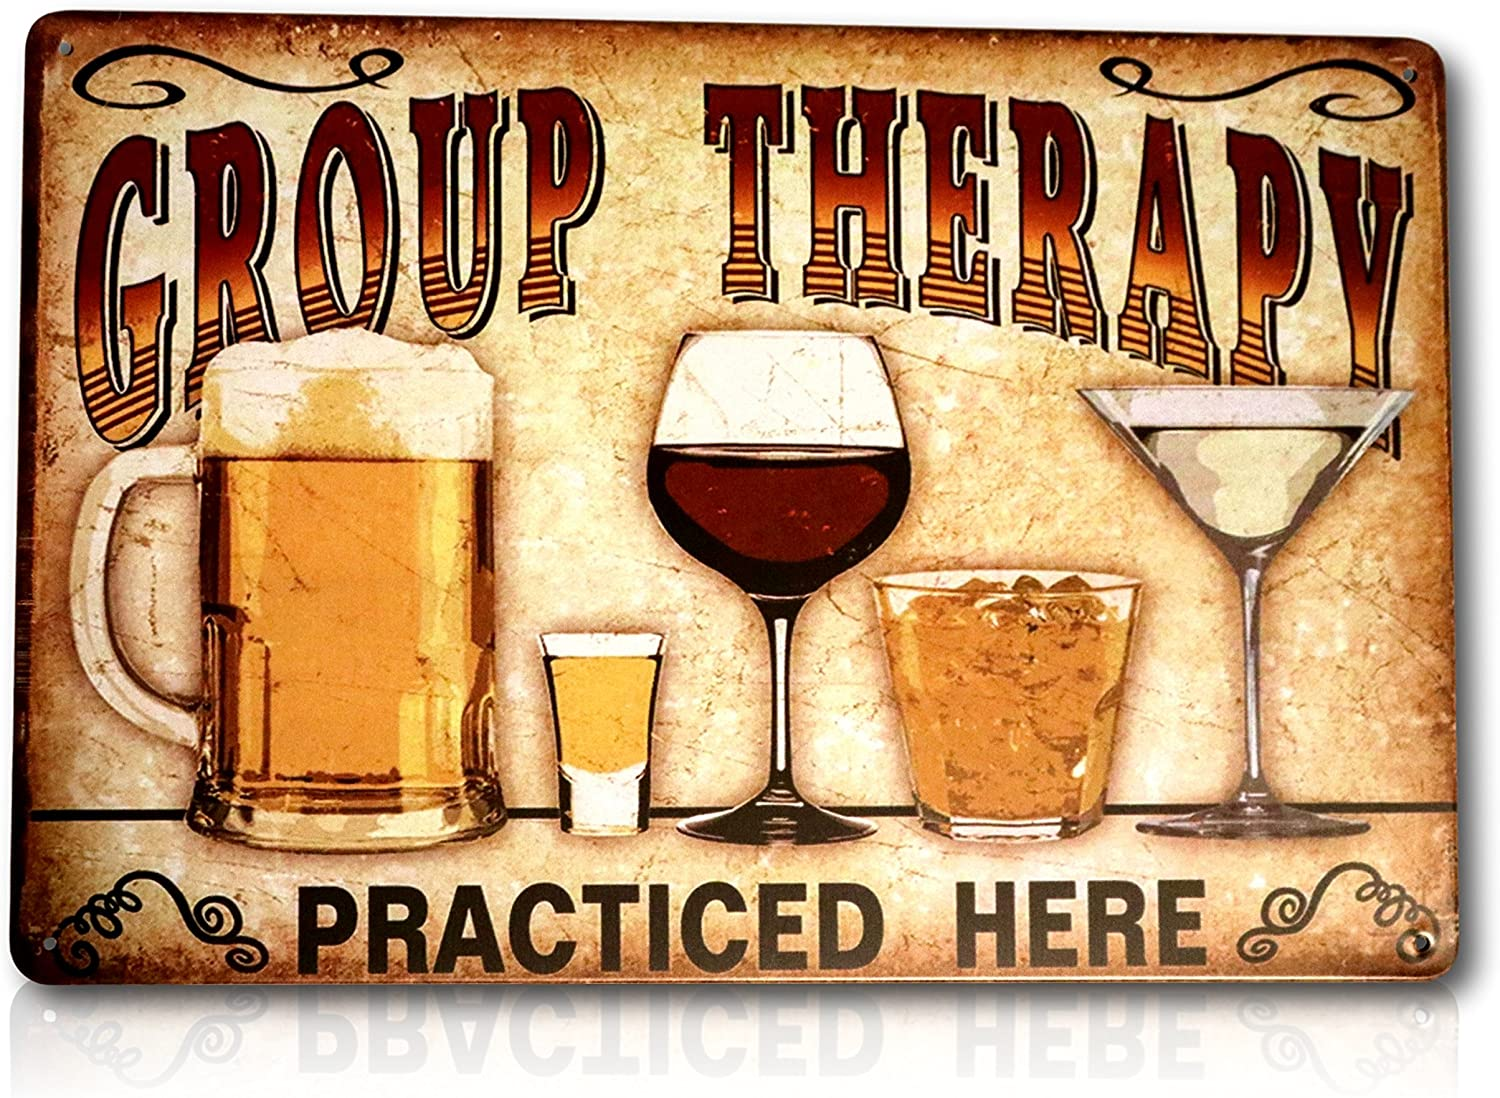 Save Directly Funny Group Therapy Practiced Here Sign - Beer Alcohol Shot Wine Whiskey Martini Vintage Retro Tin Pub Metal Tin Wall Signs Size: 8x12 Inches